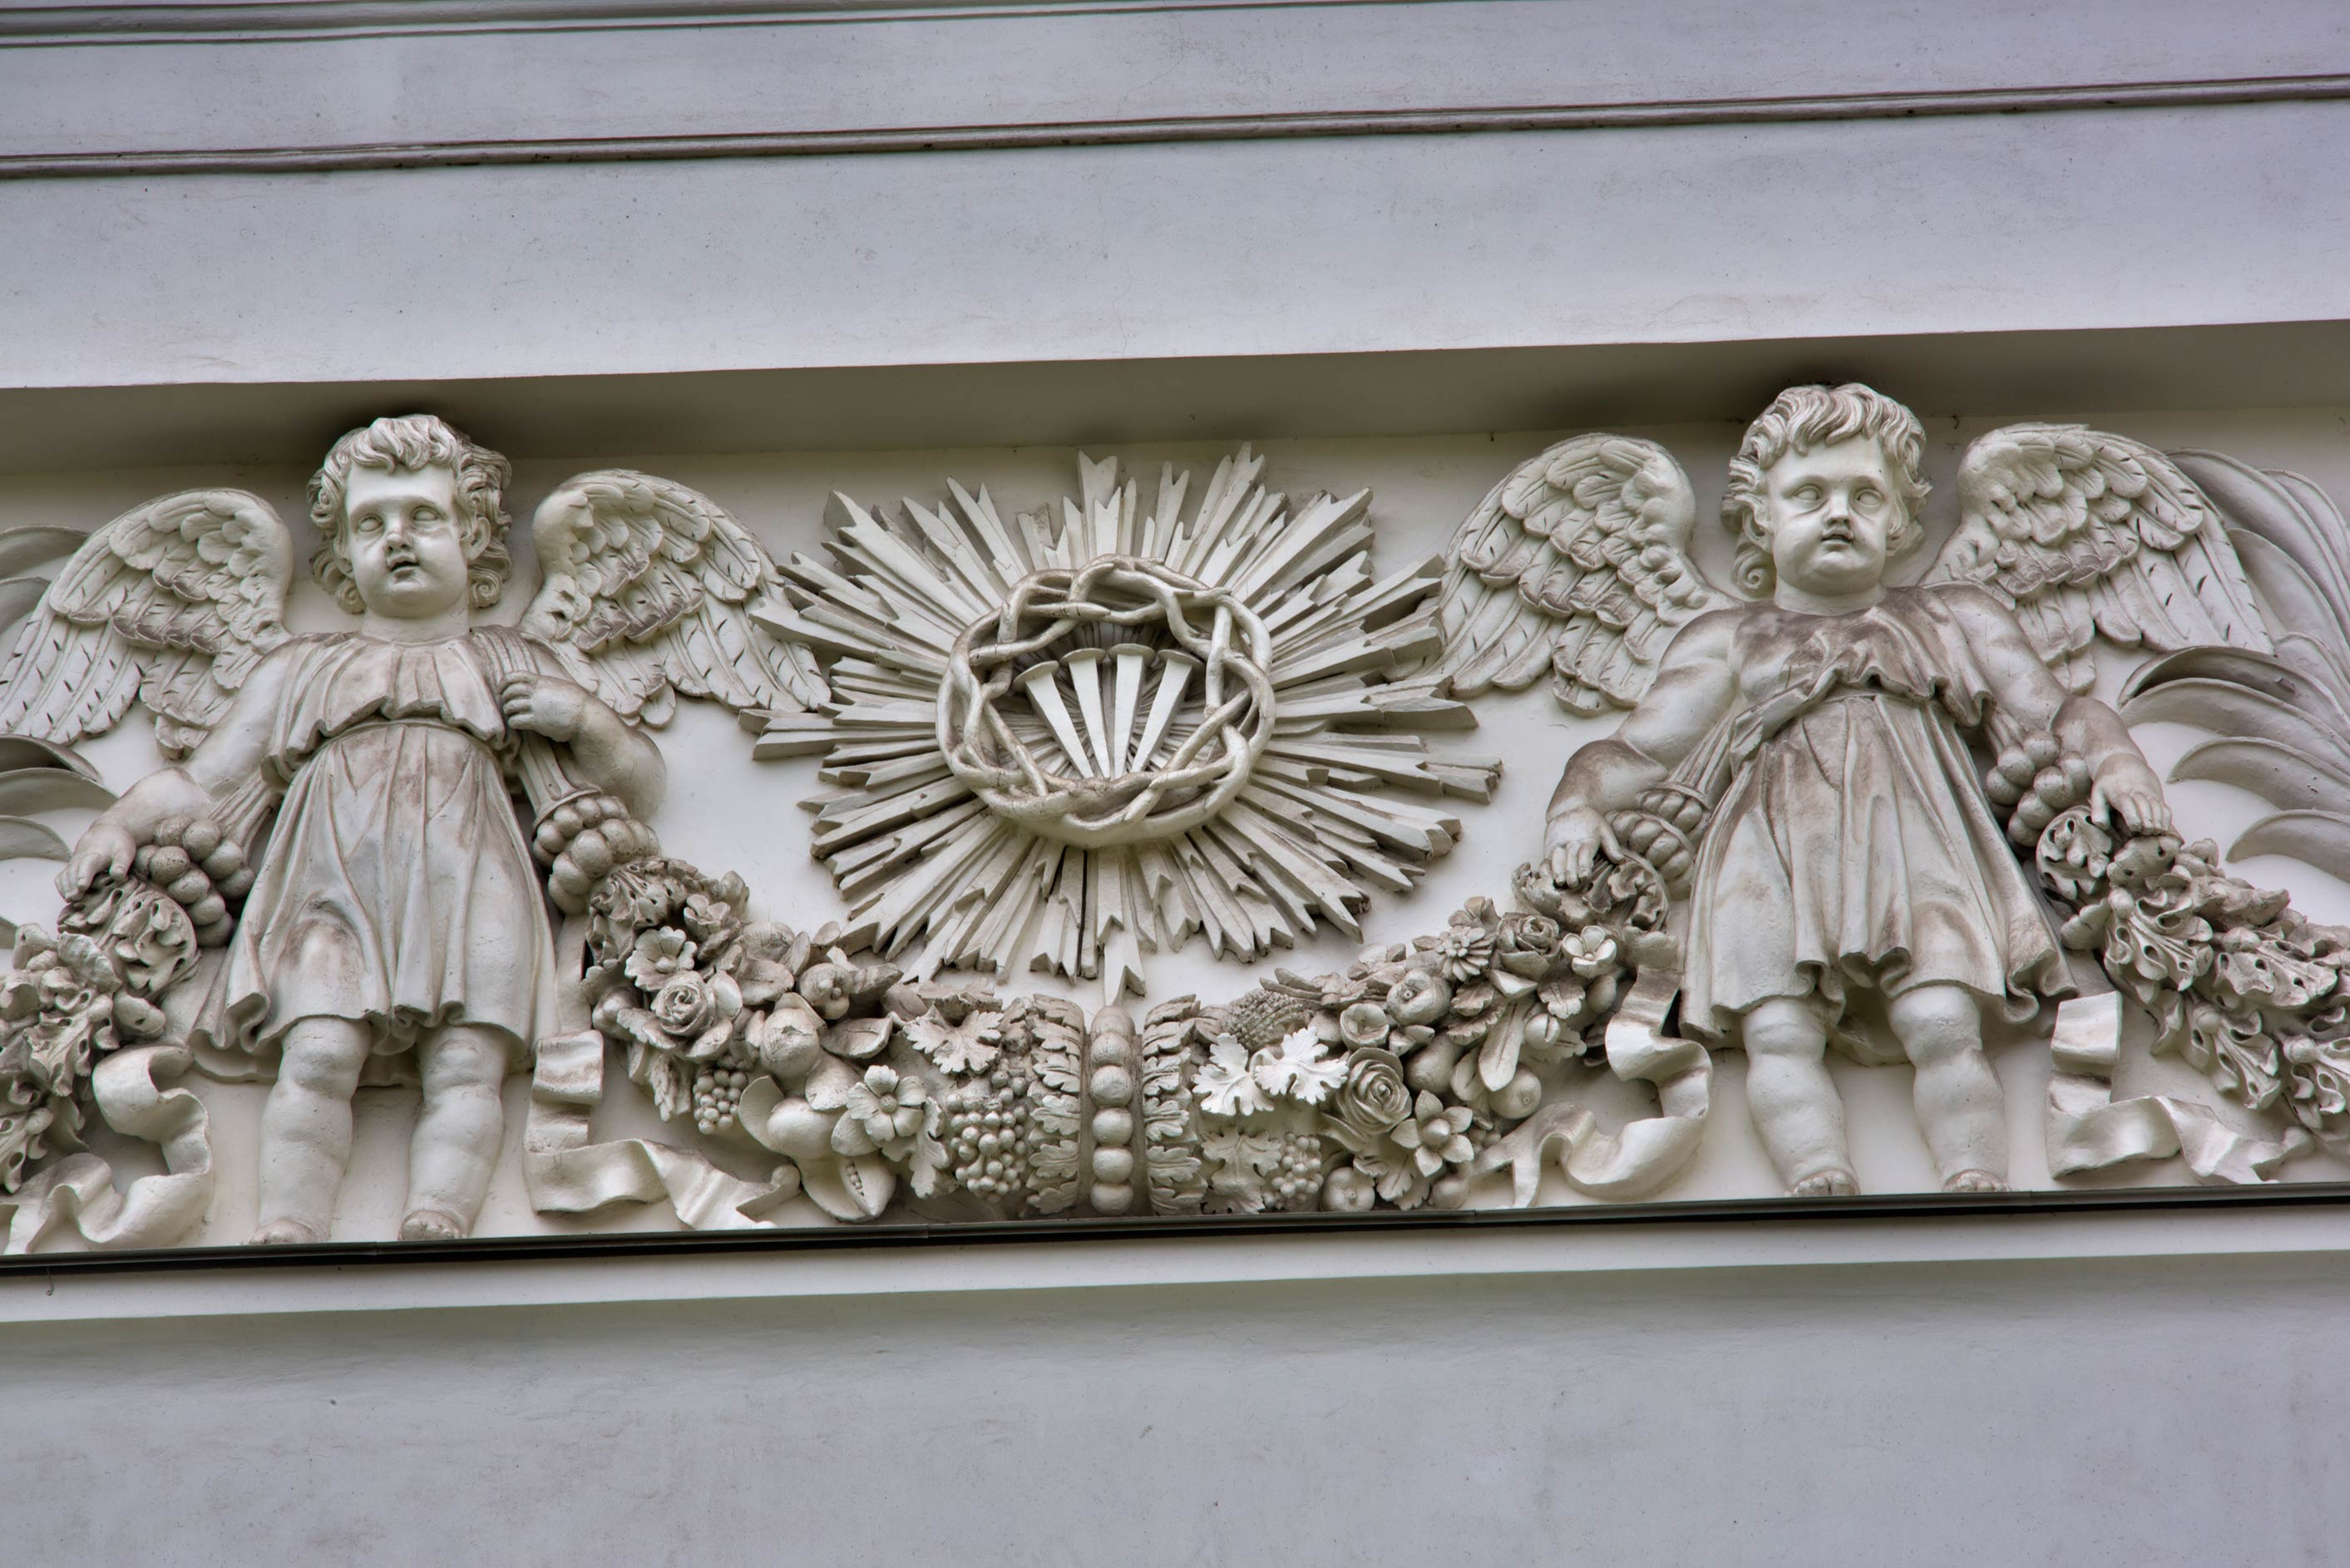 Dusty angels of Troitse-Izmaylovsky Cathedral. St.Petersburg, Russia